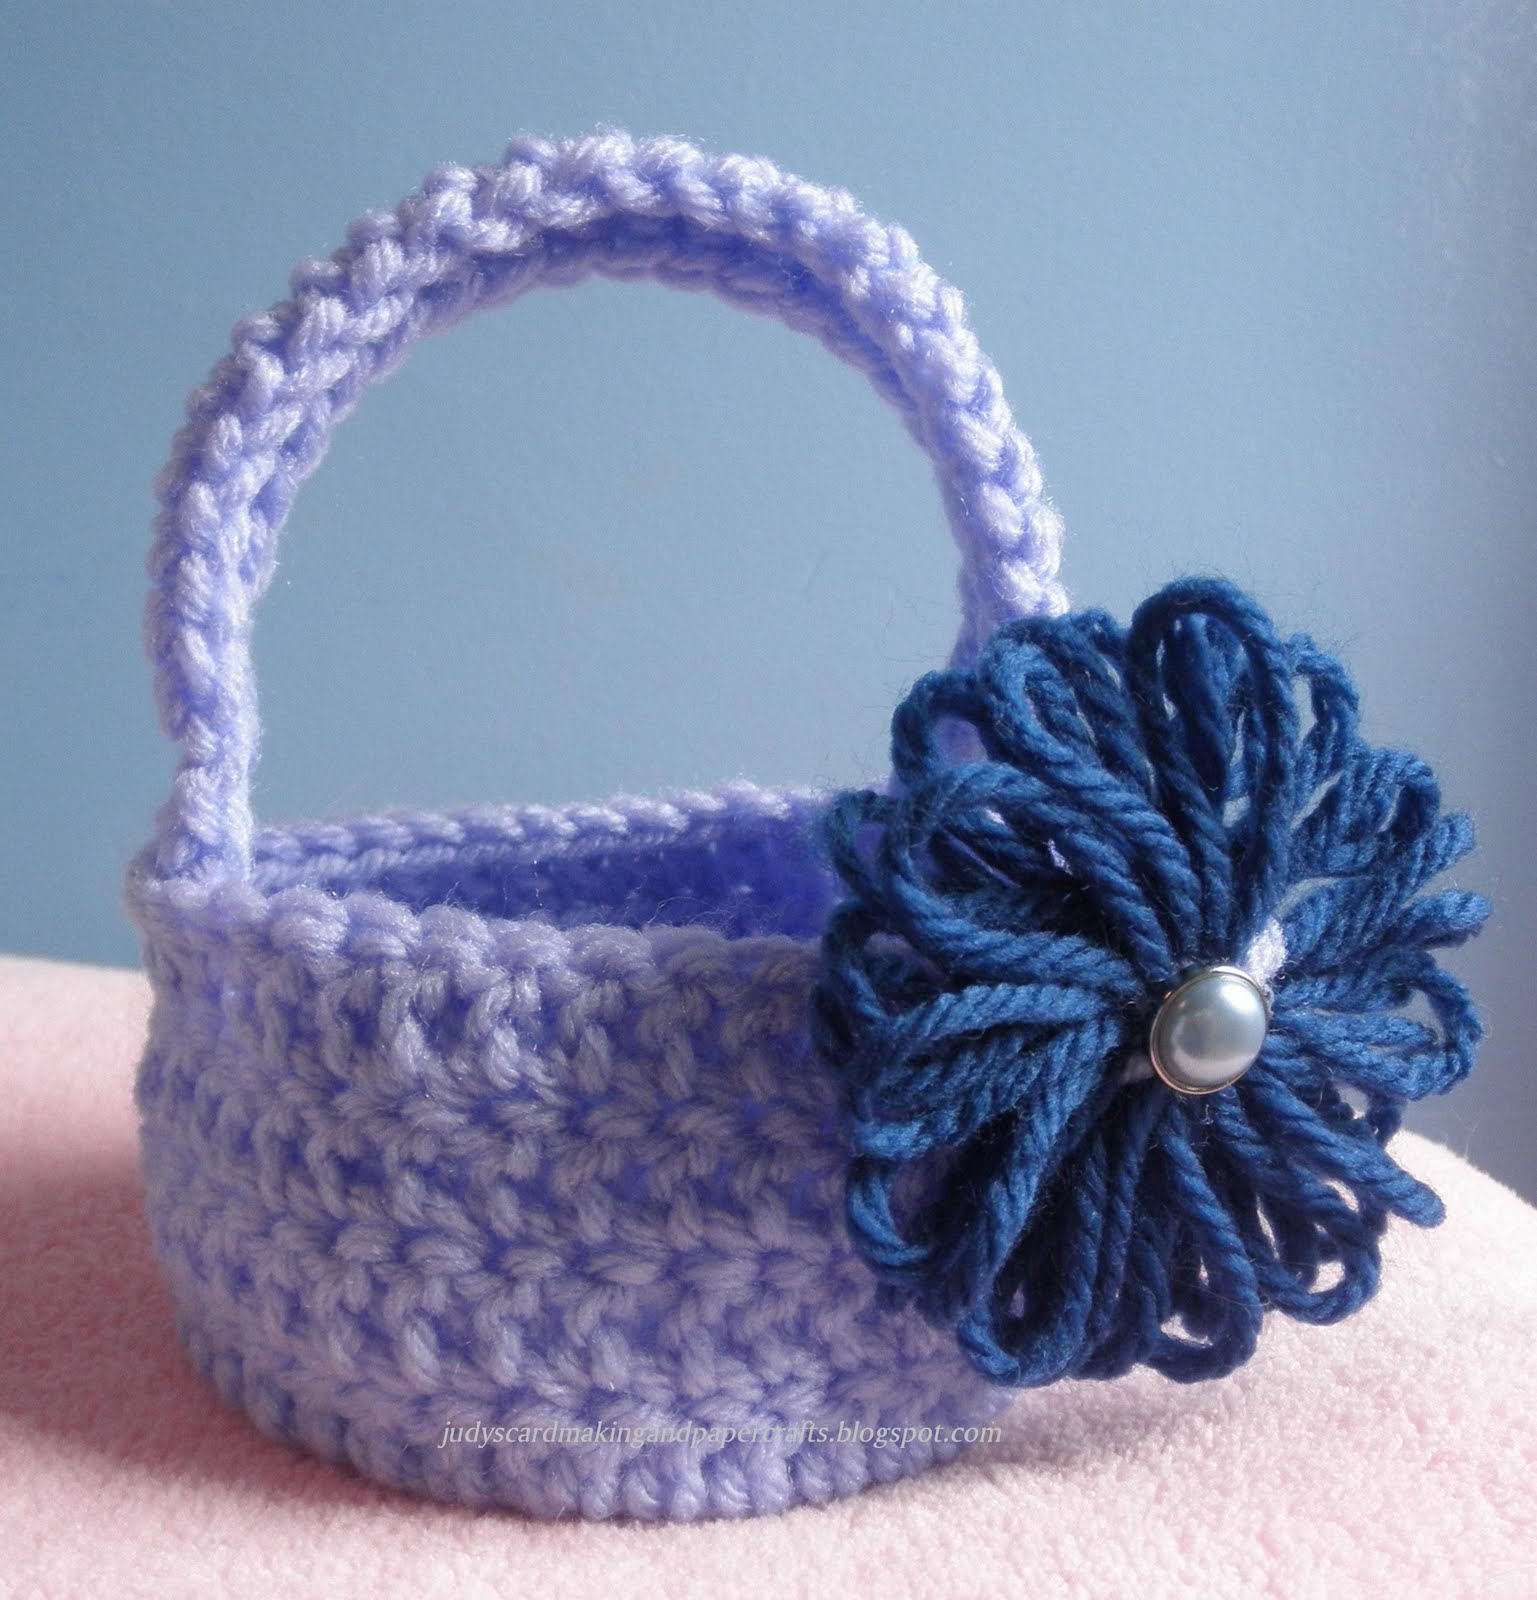 Crocheted basket!